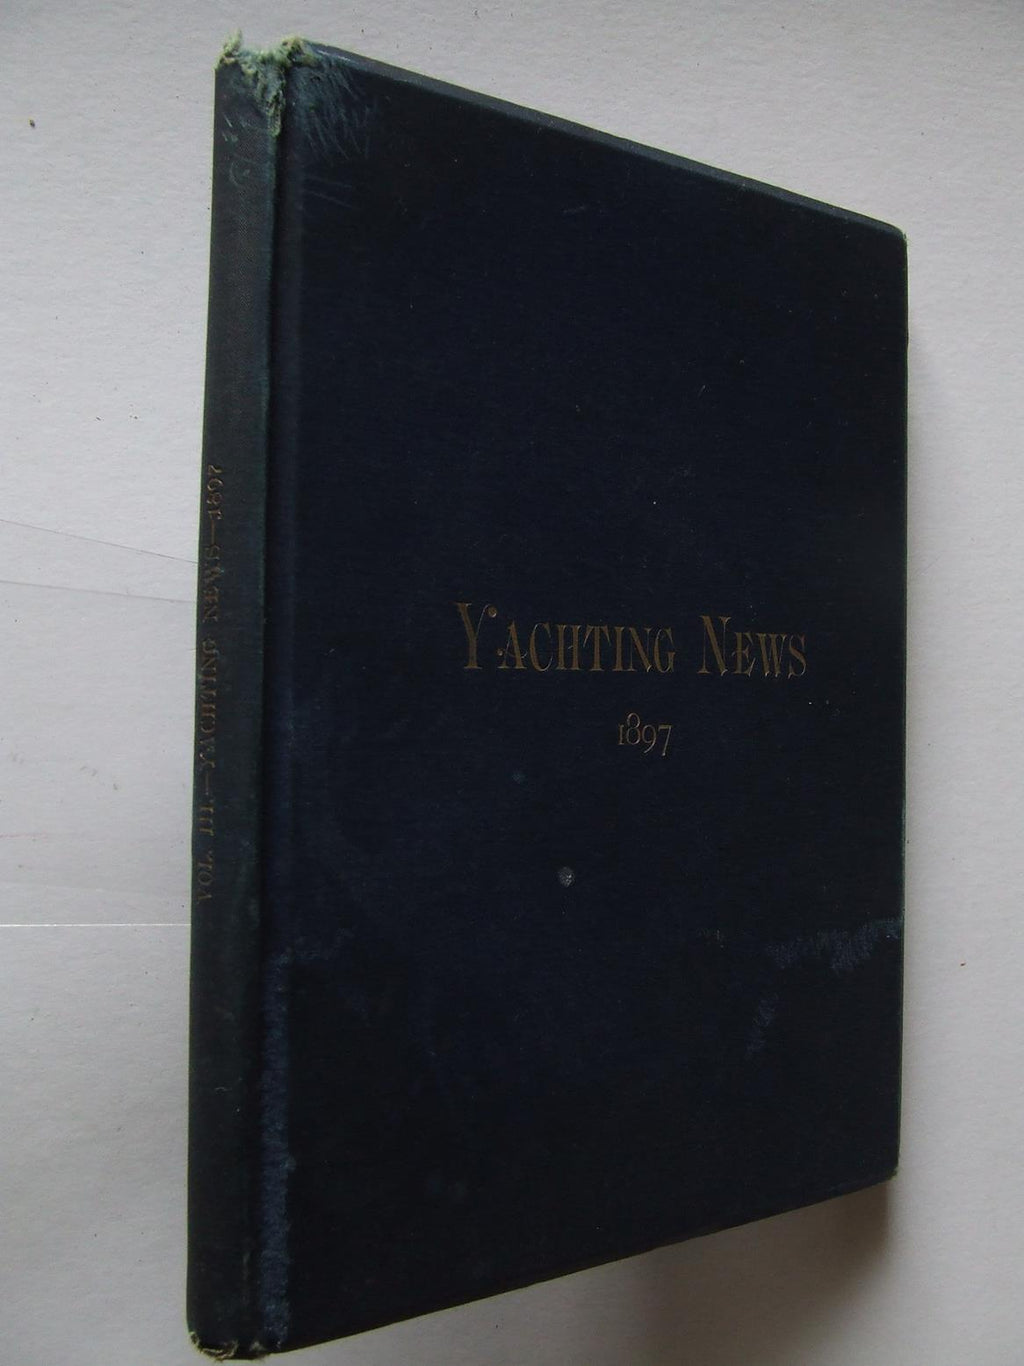 Yachting News. Vol. III. 1897. [May 29th - September 11th 1897]